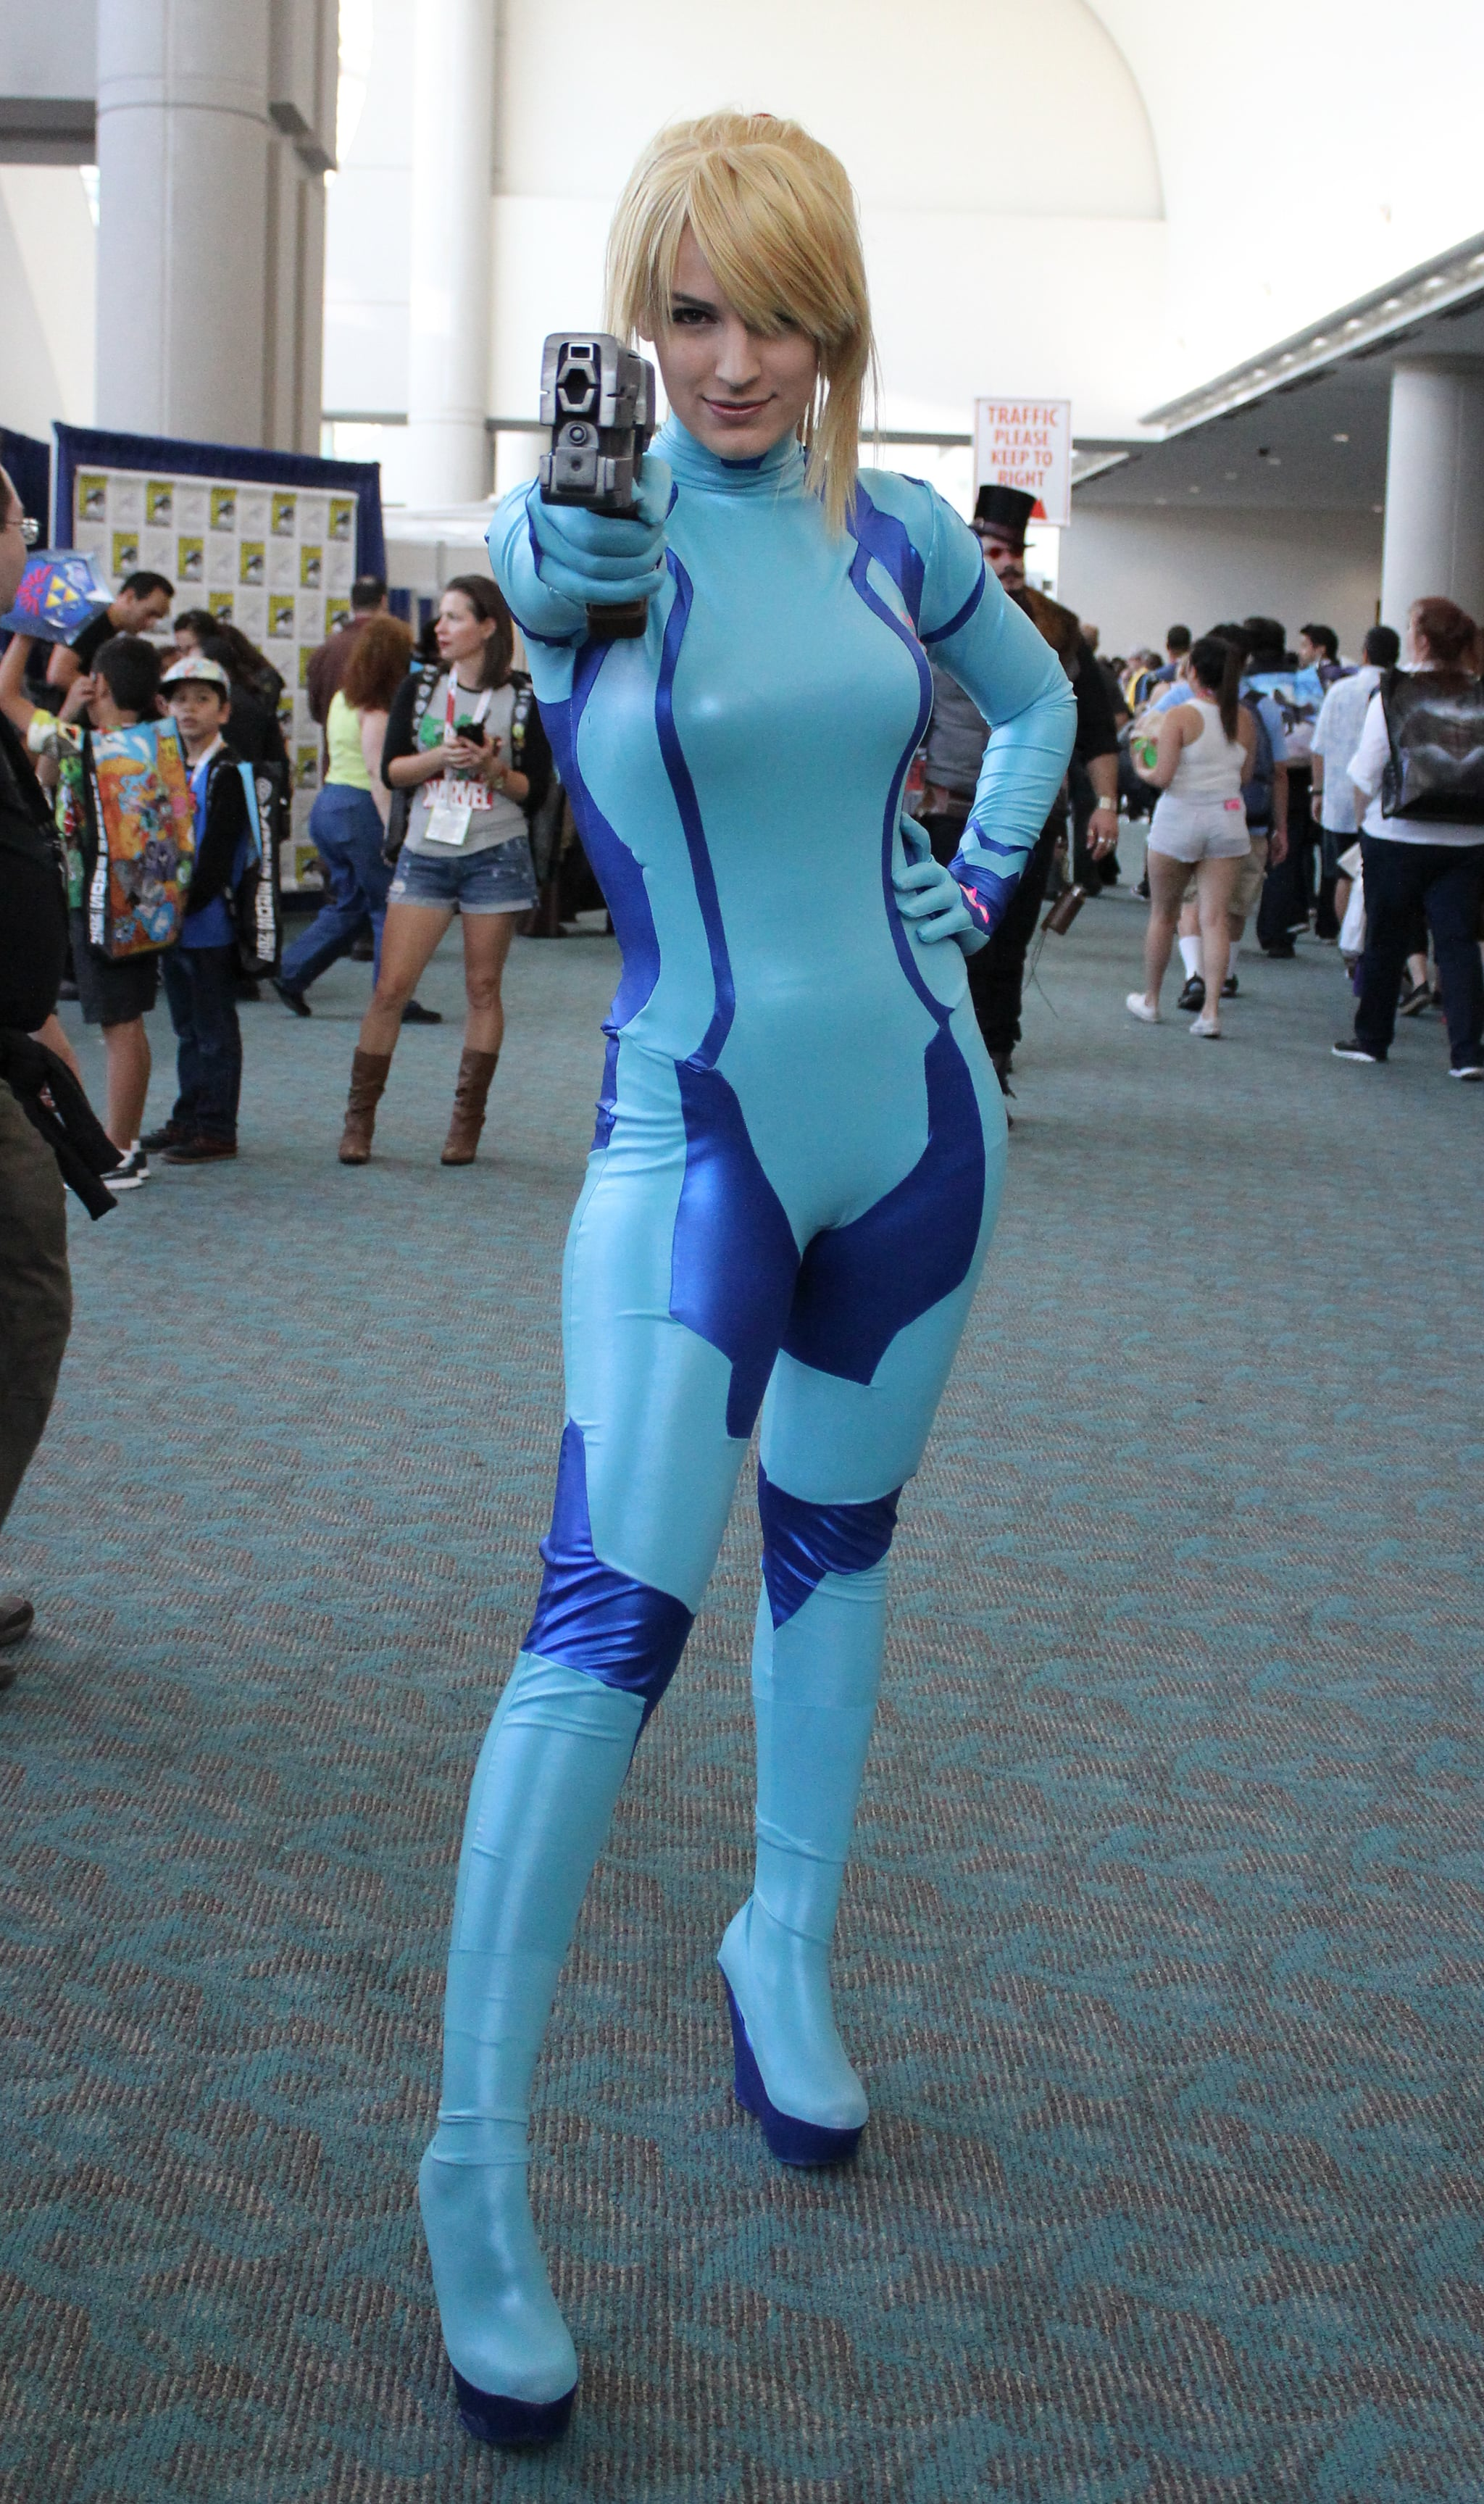 Zero Suit Samus From Super Smash Bros Brawl 101 Wildly Creative